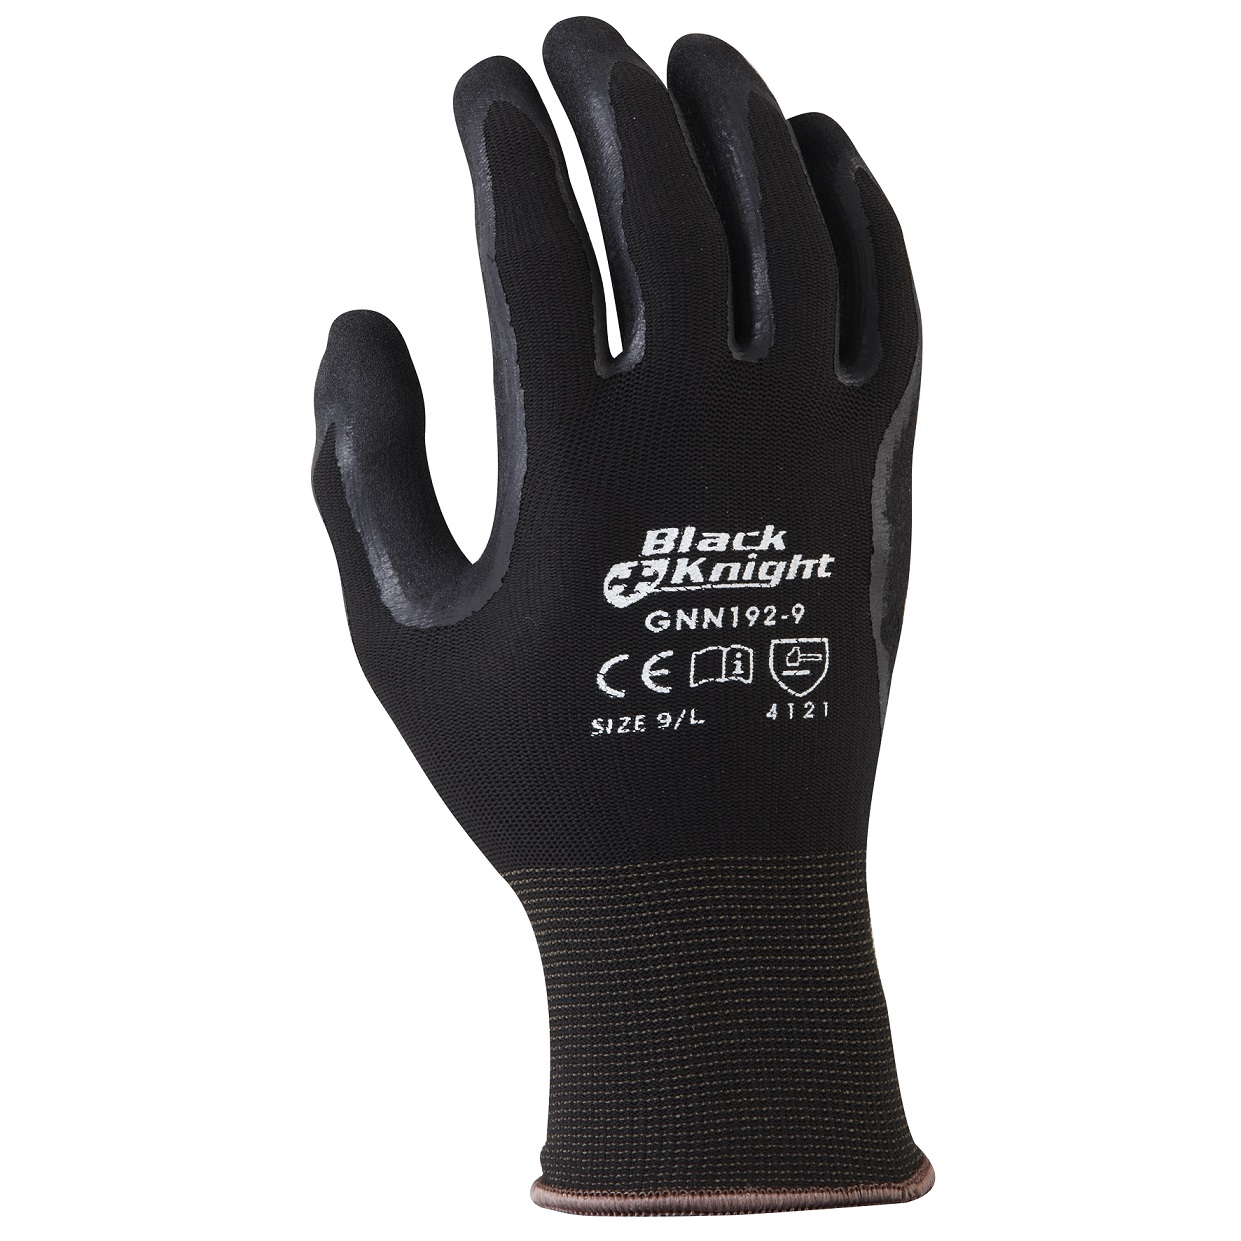 WorkShield - Nylon glove - nitrile coated